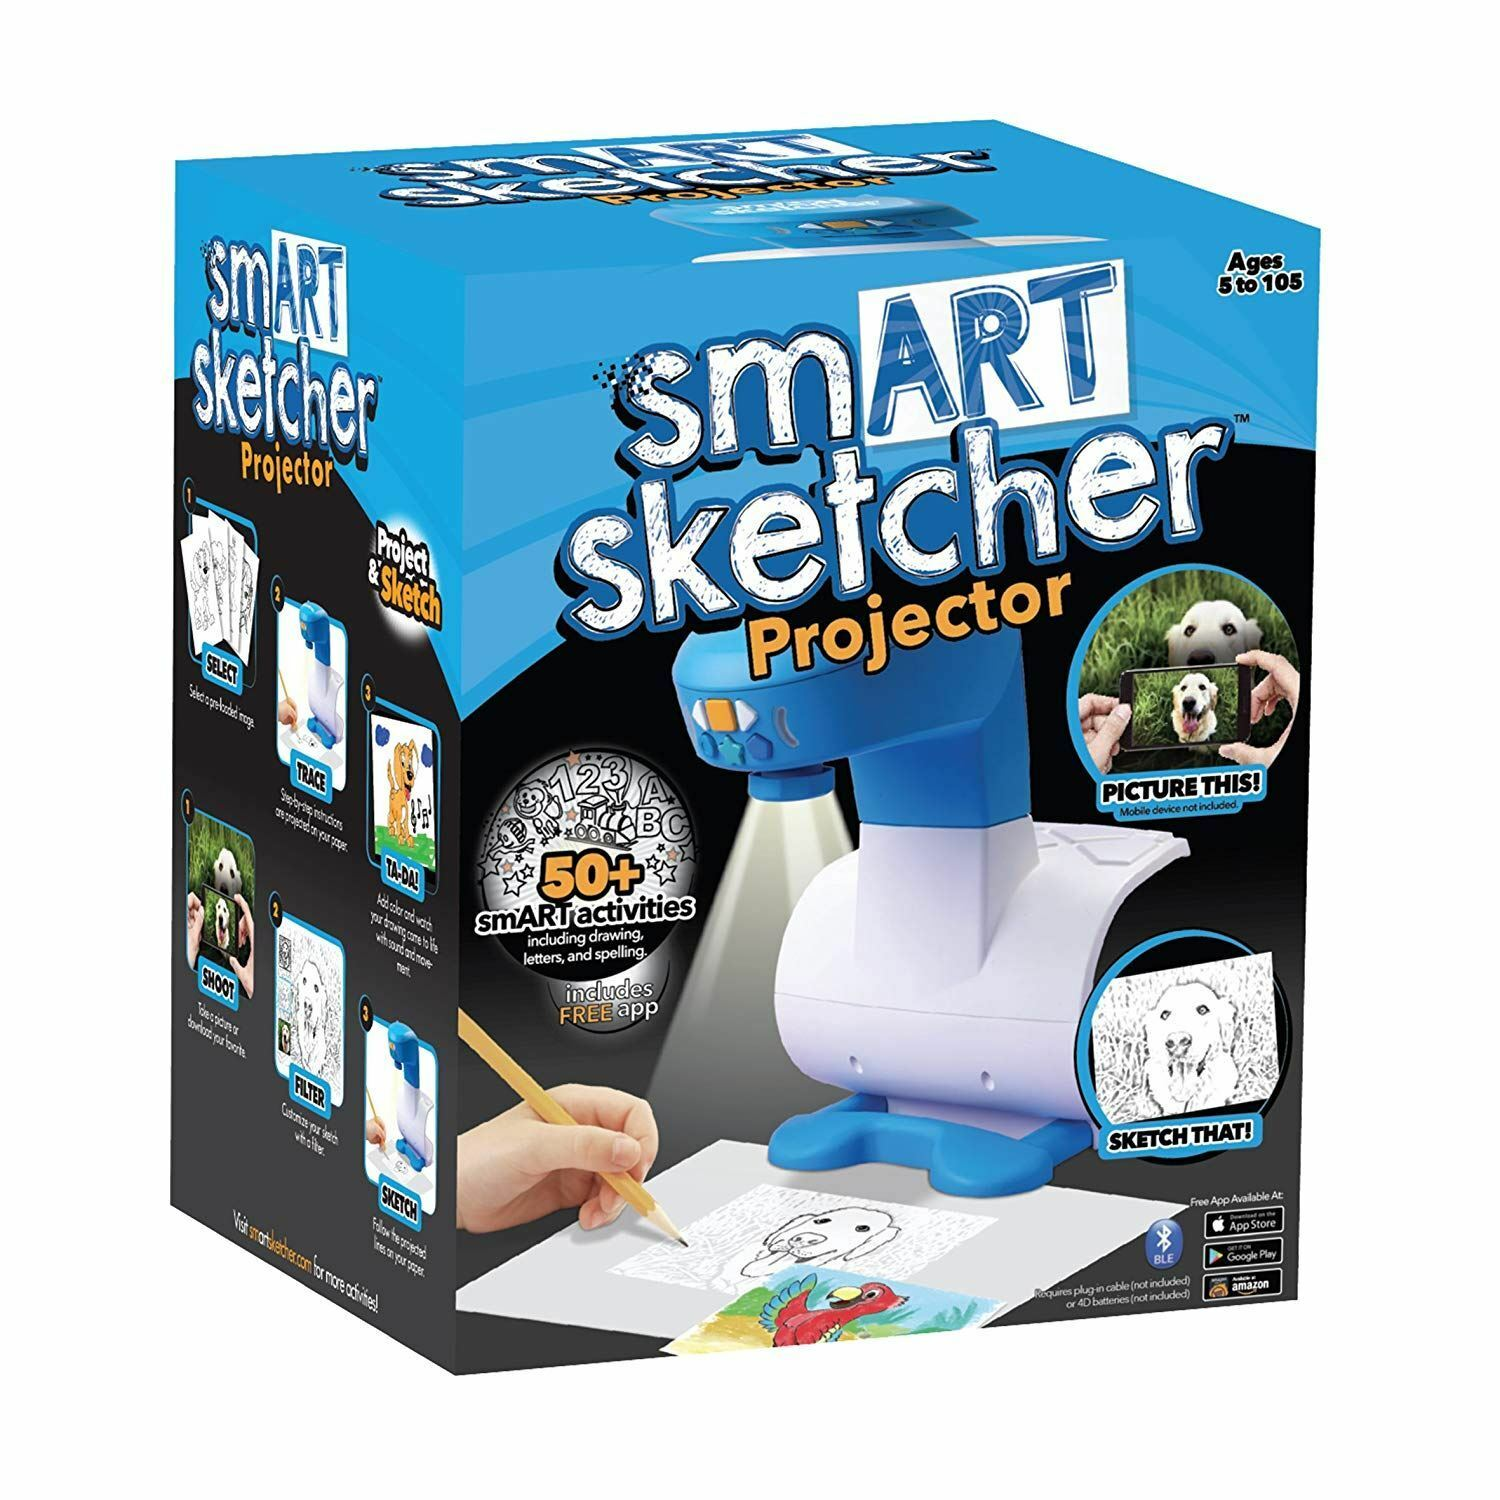 SmART Sketcher Projector Learn To Draw Interactive STEAM Learning